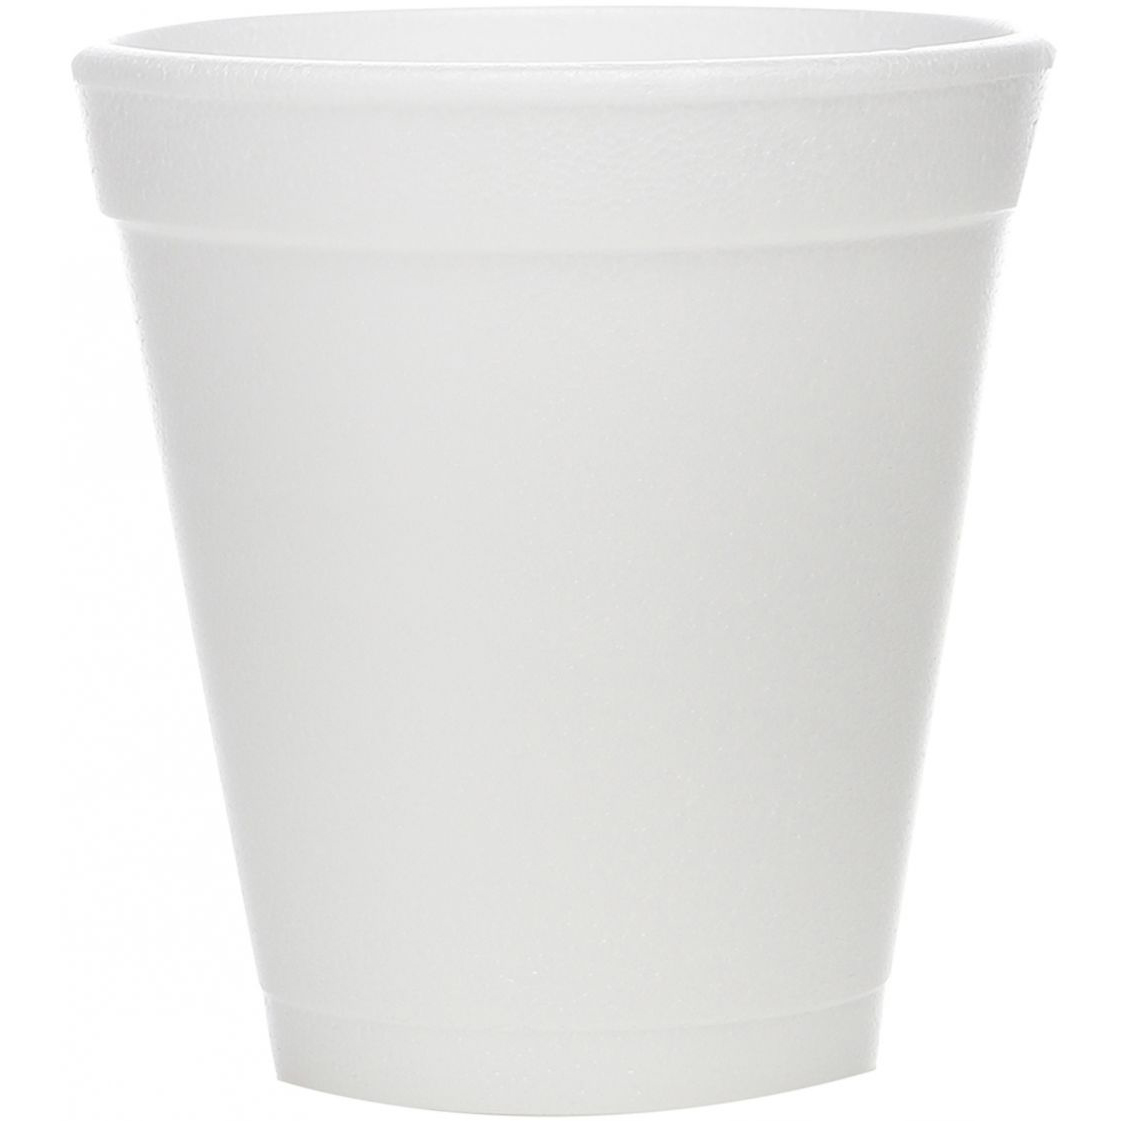 Hotpack FC6 Foam Cup - 6oz (box/1000pcs)